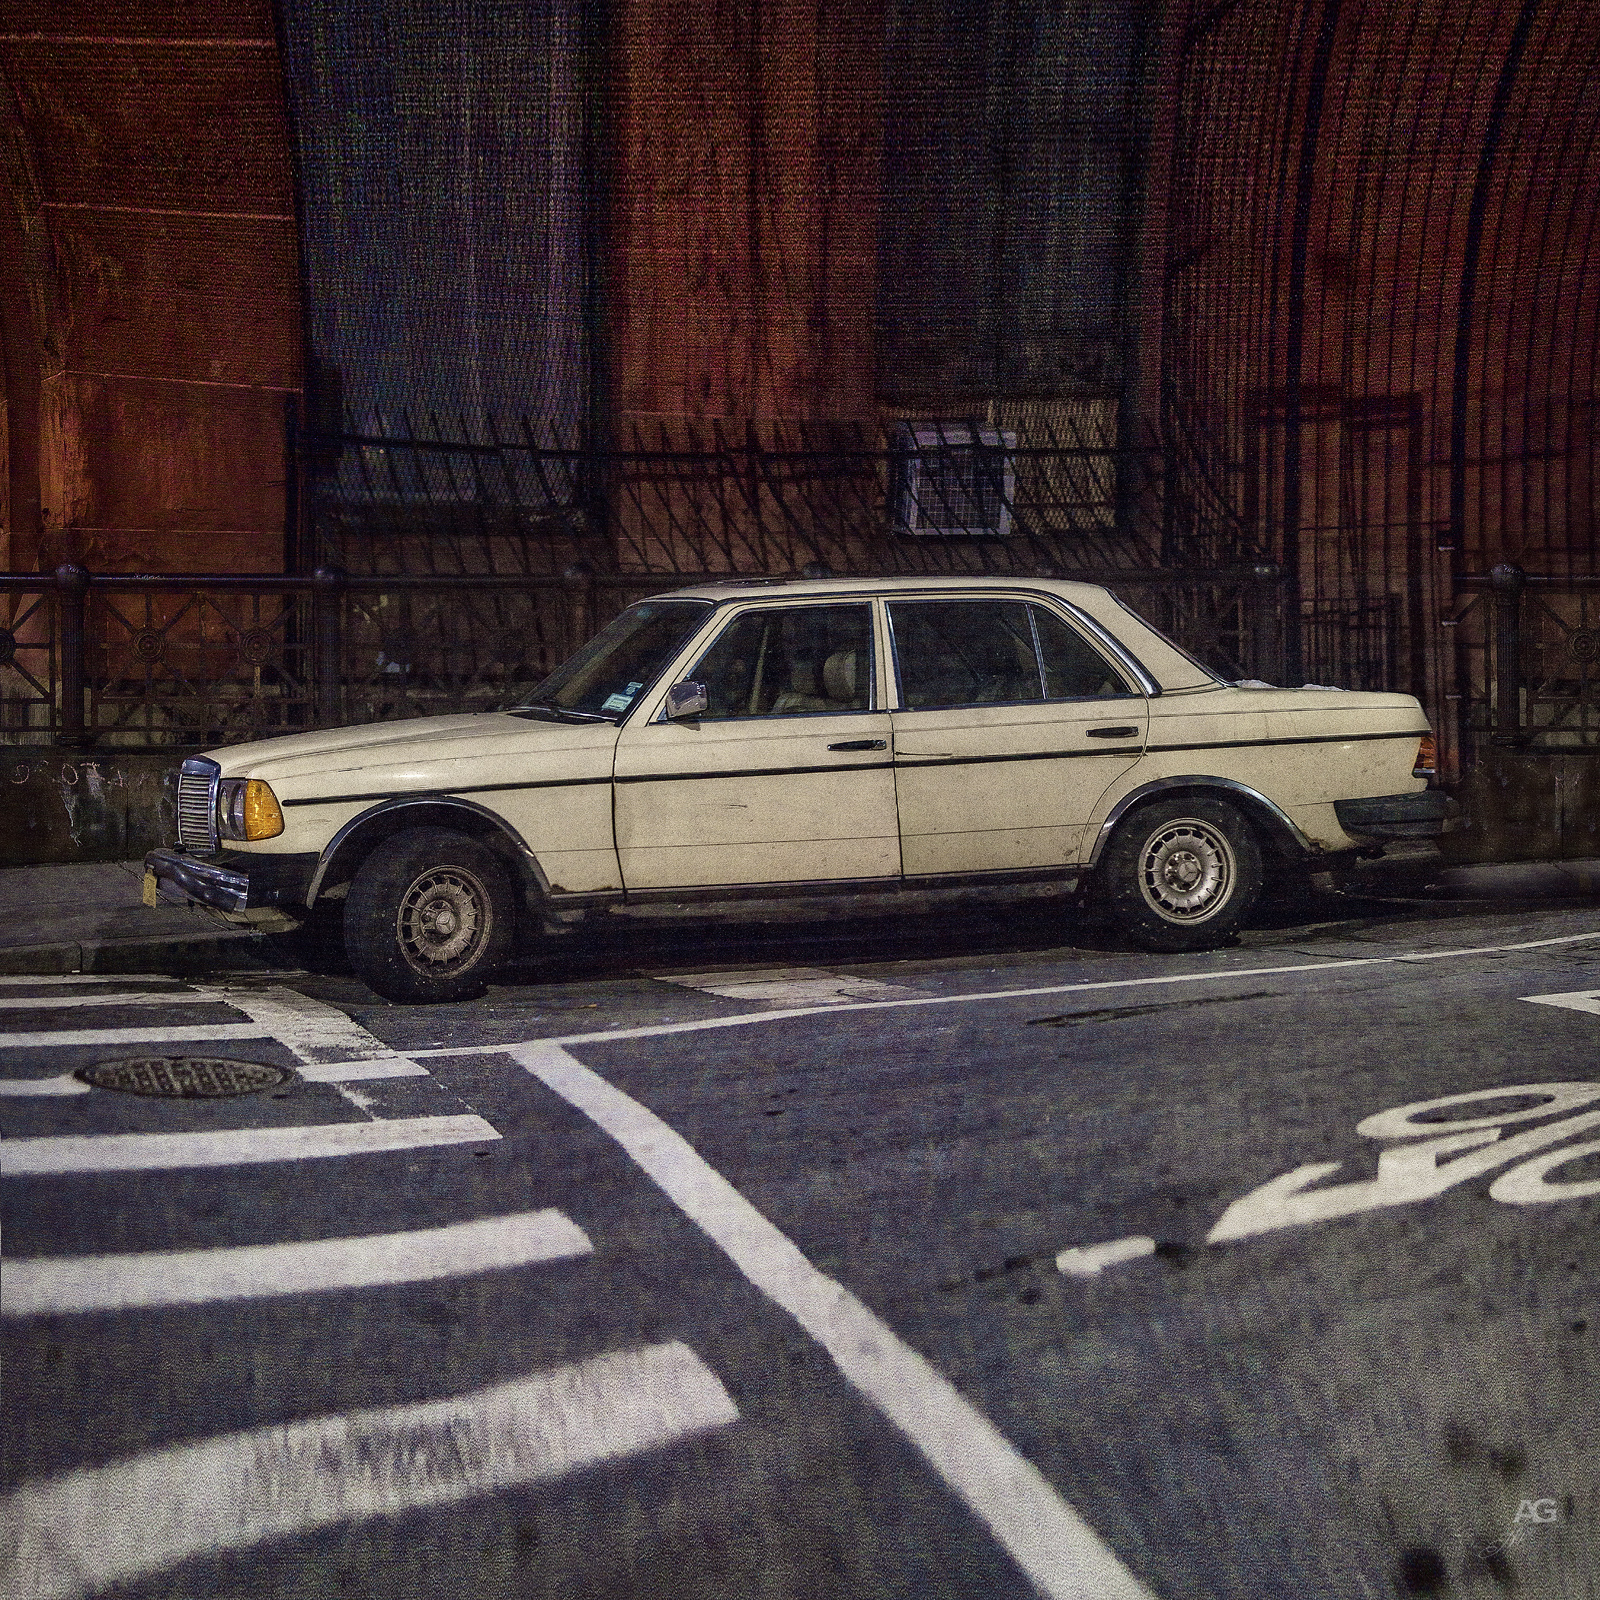 IvoryMercedesNightGreenpoint_warped_1600